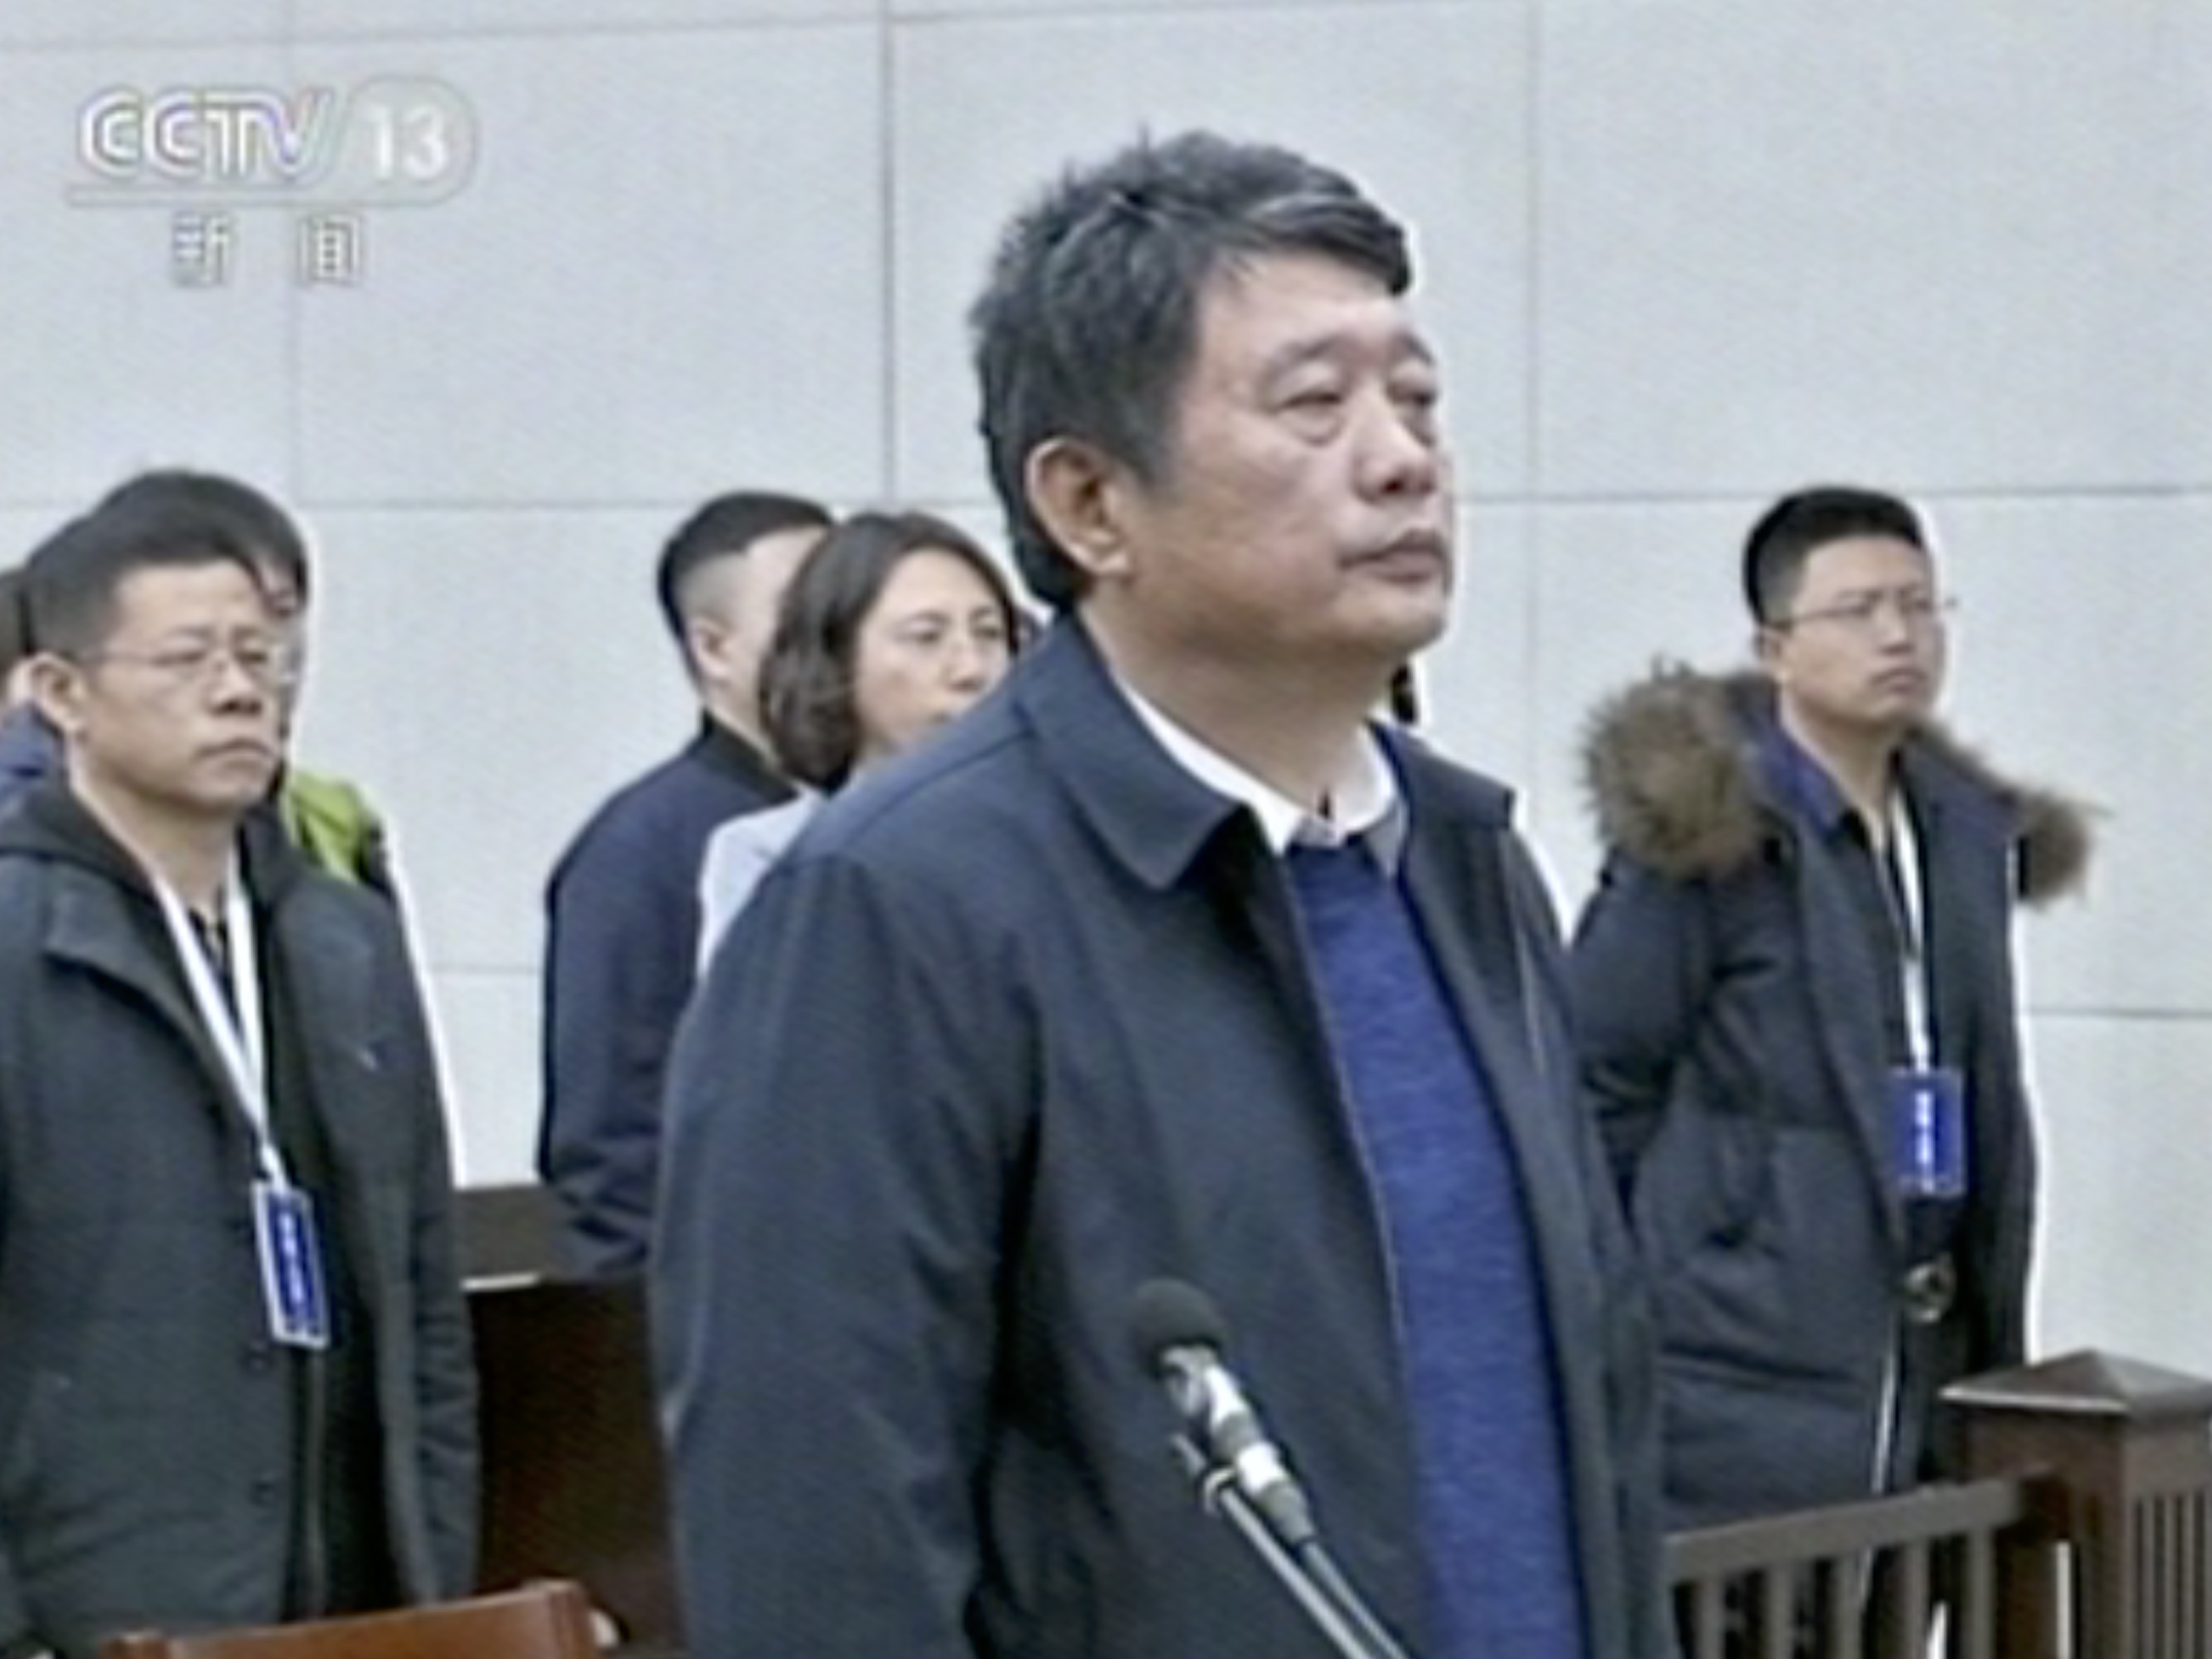 Former Head Of Chinese Counterintelligence Sentenced To Life In Prison